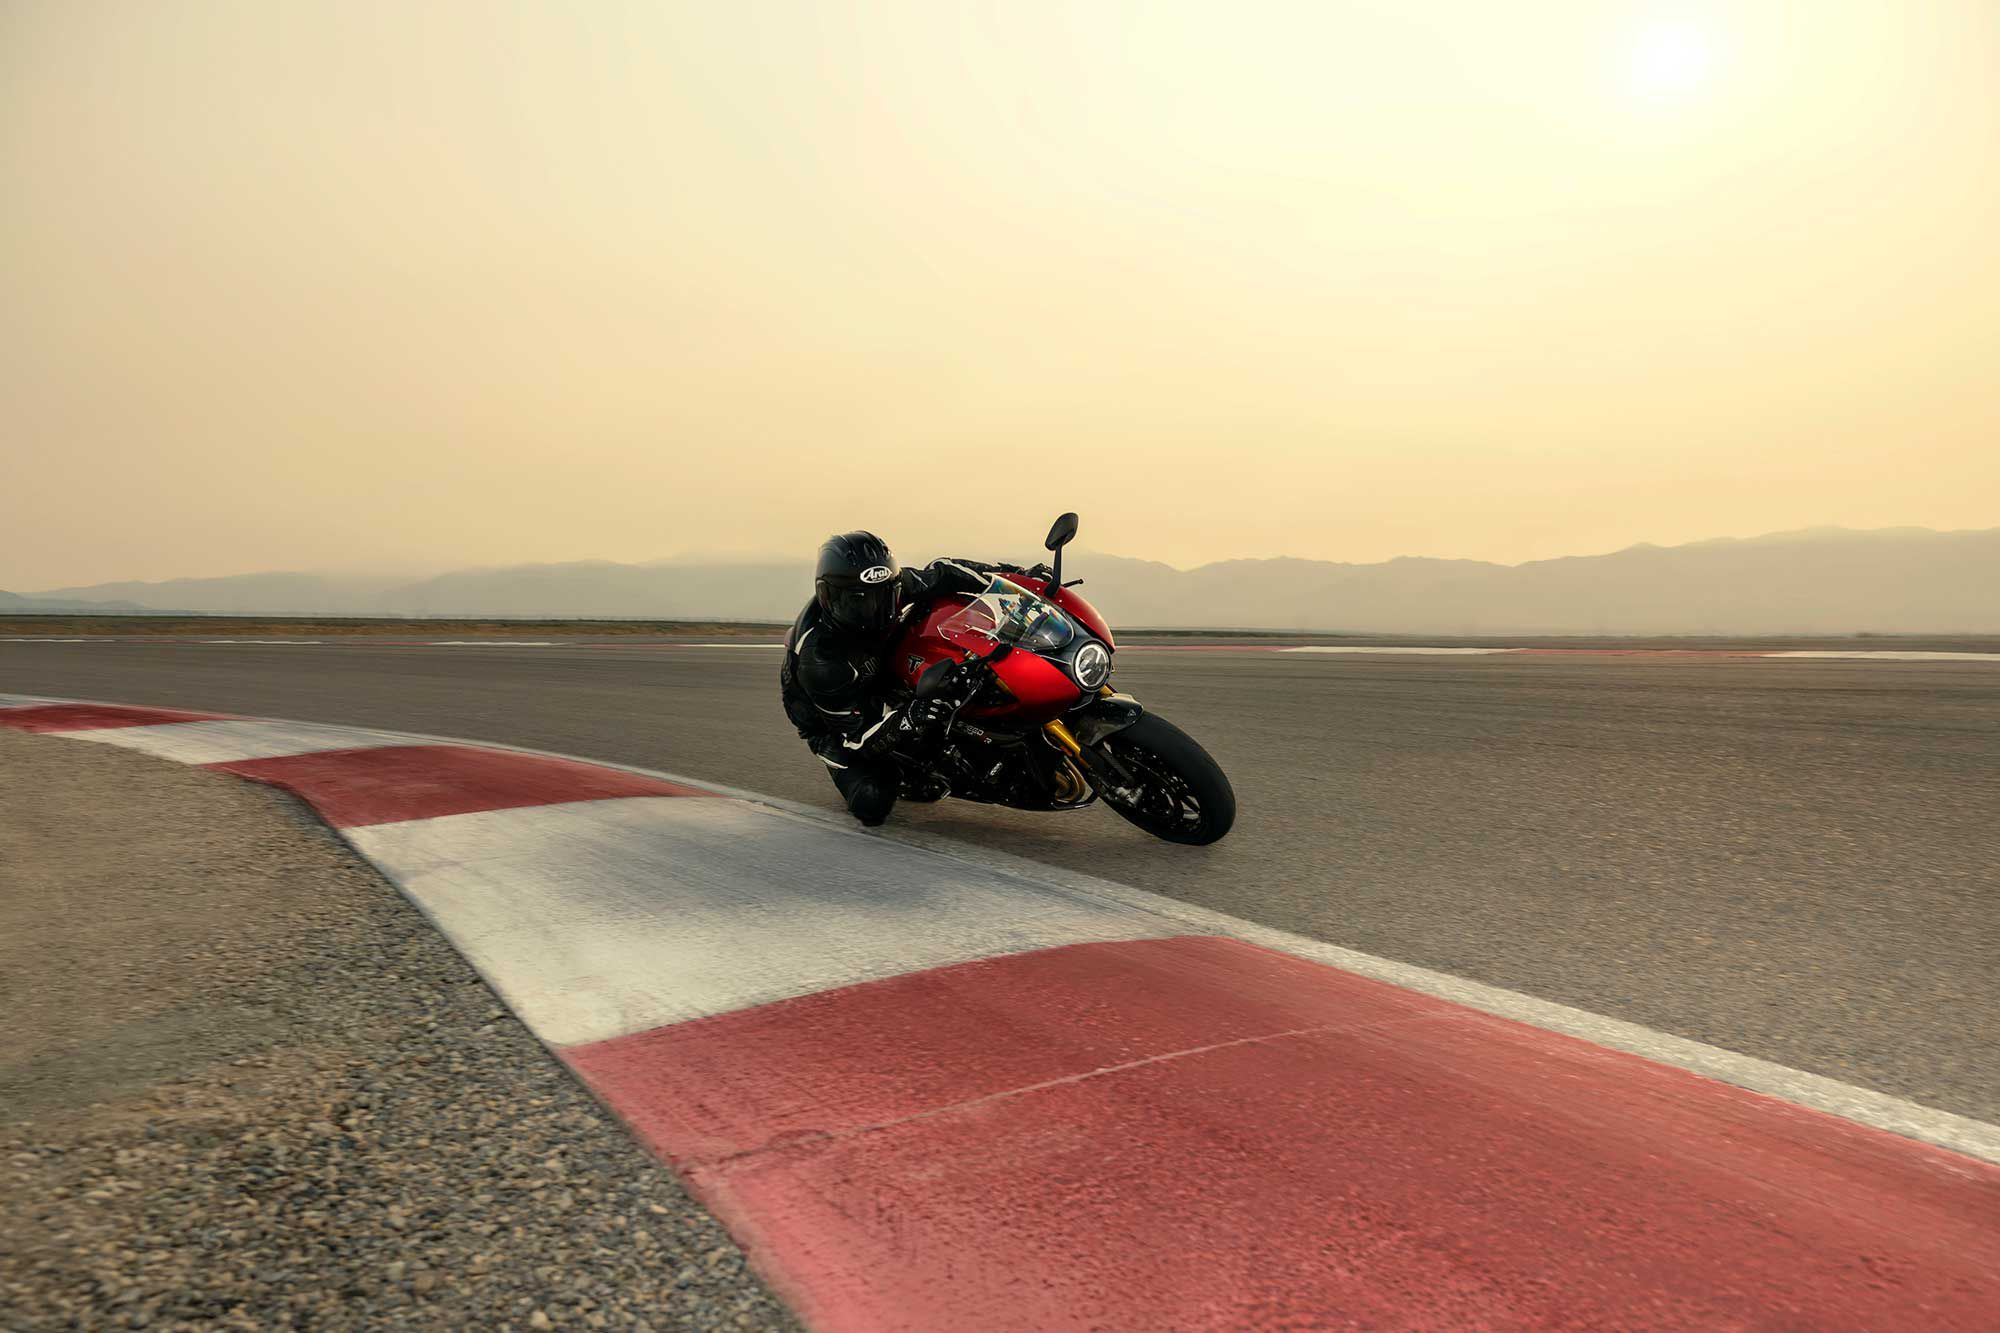 Pricing starts at $20,950 for a 2022 Triumph Speed Triple 1200 RR.